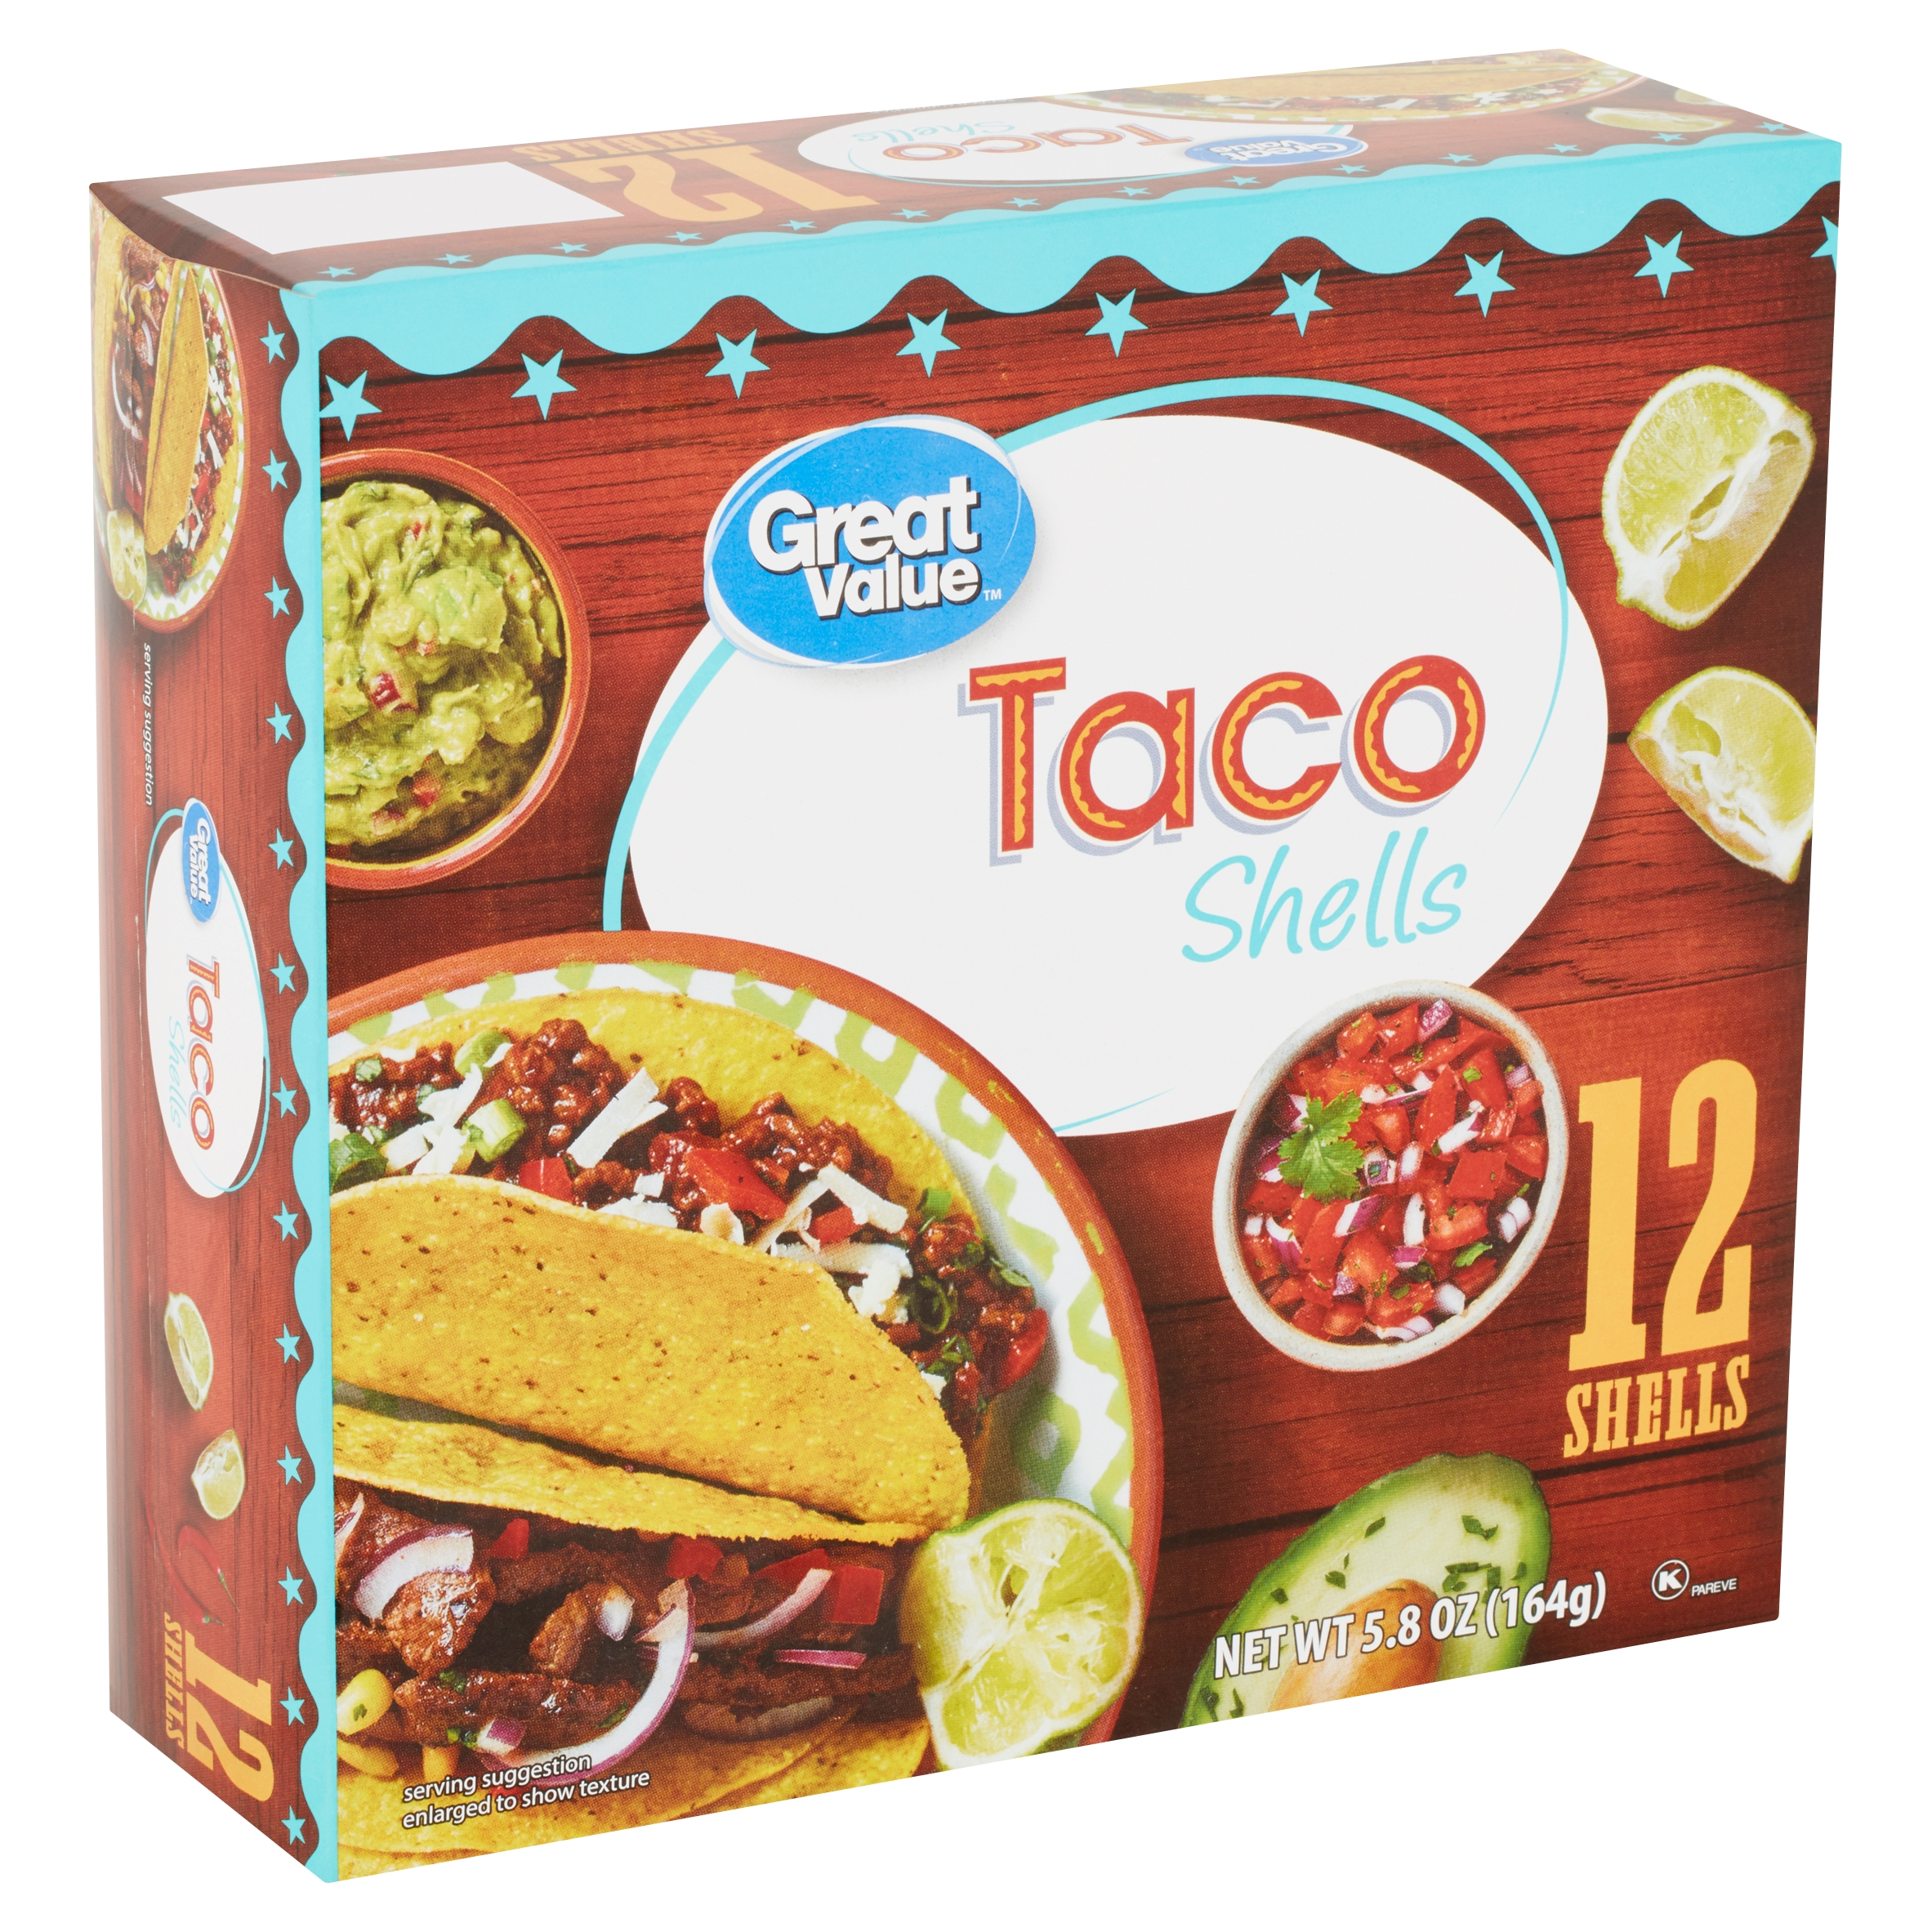 Great Value Taco Shells 5 8 Oz Box From Walmart In Fort Worth Tx Burpy Com